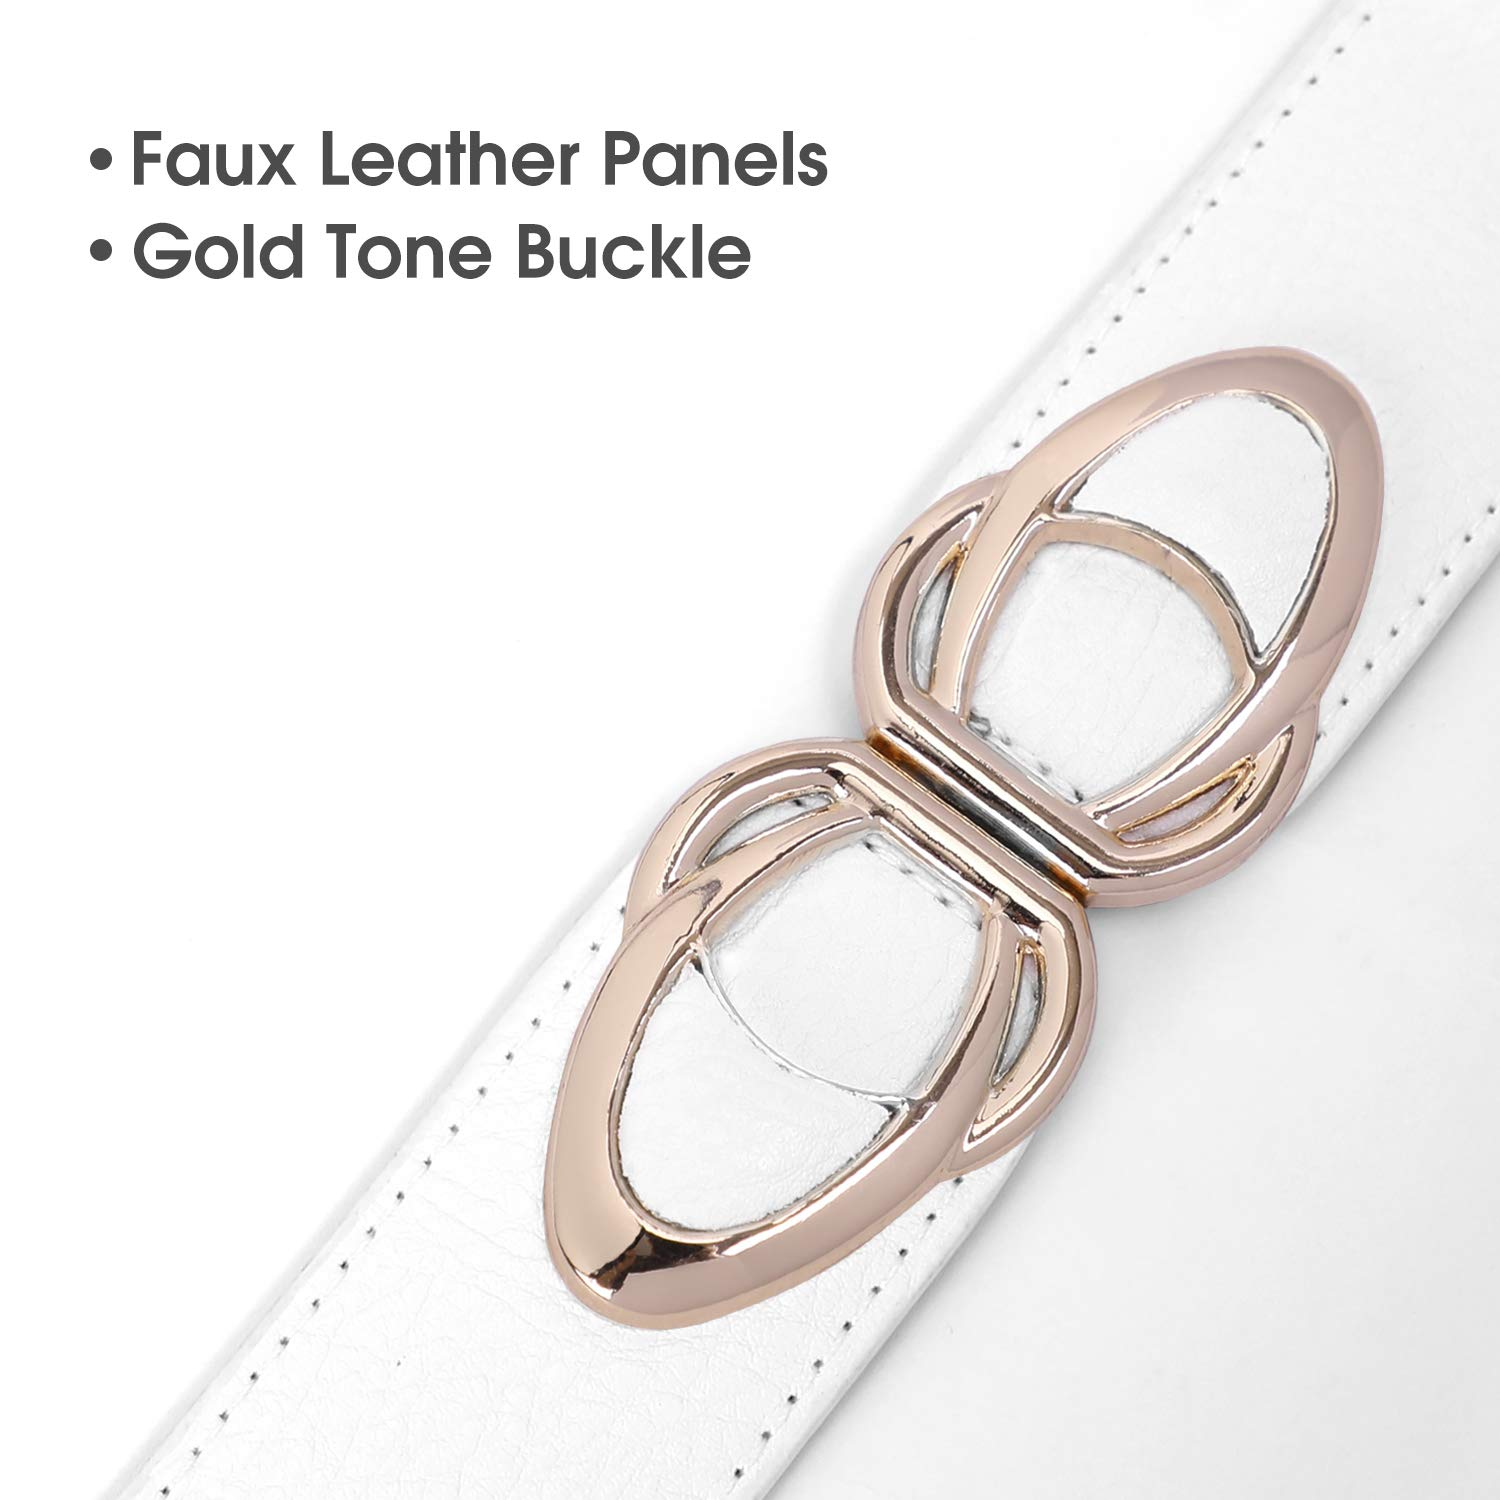 Women Wide Elastic Stretchy Belt - WHIPPY Stretch Retro Vintage Buckle Waist Belts for Dress White, Fit Waist 35-40 Inches